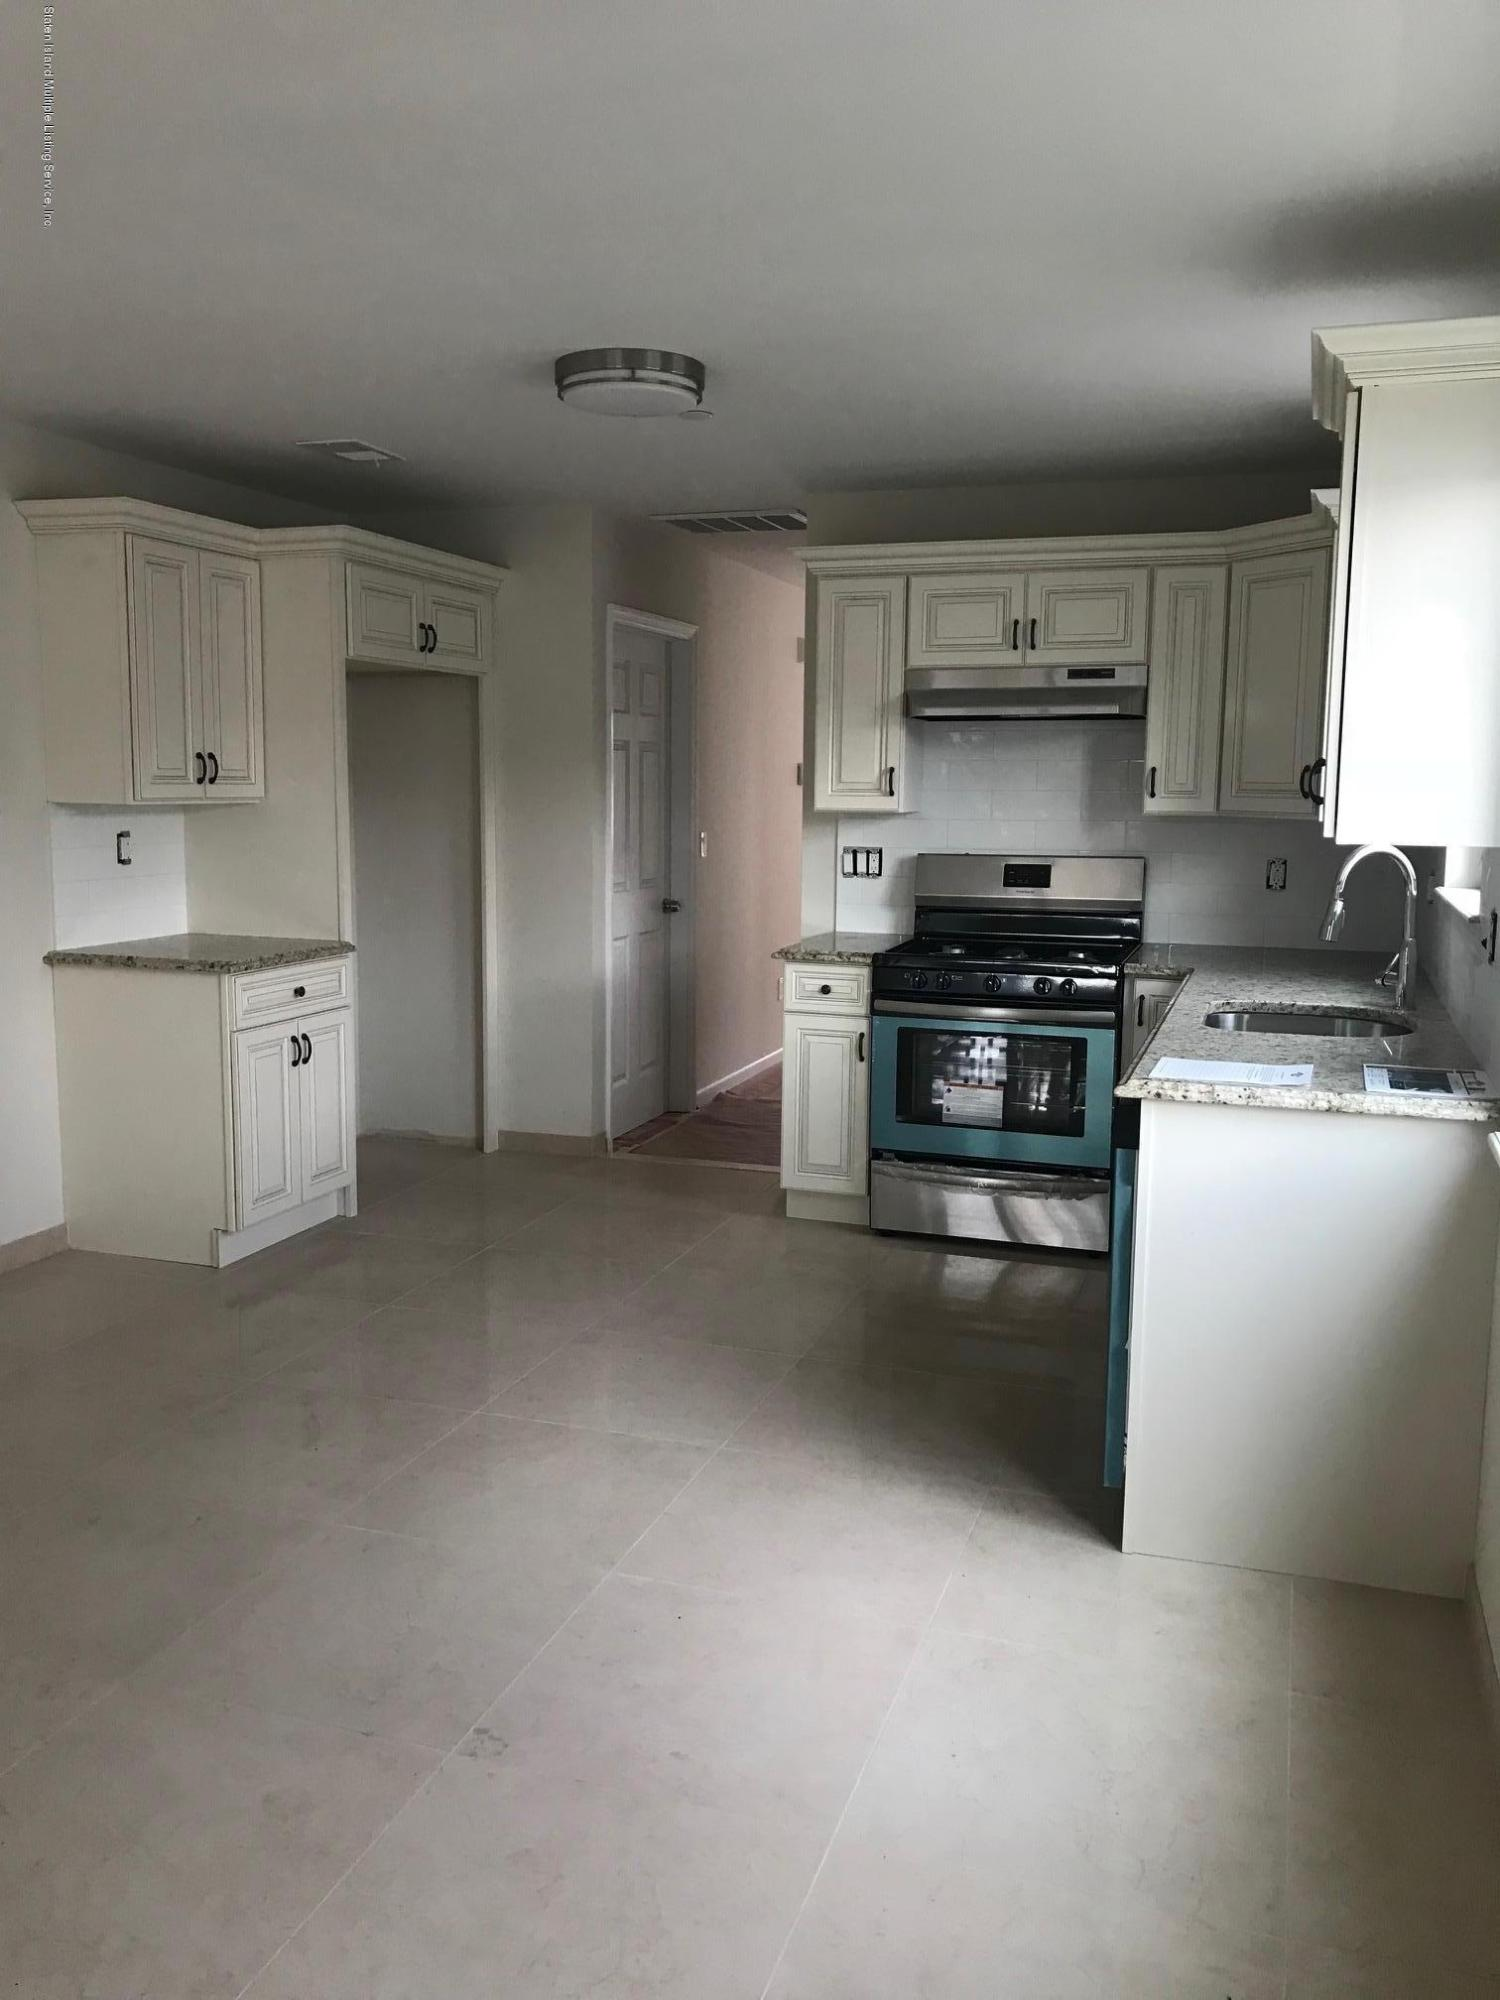 Single Family - Semi-Attached 14 Summerfield Place  Staten Island, NY 10303, MLS-1120998-4